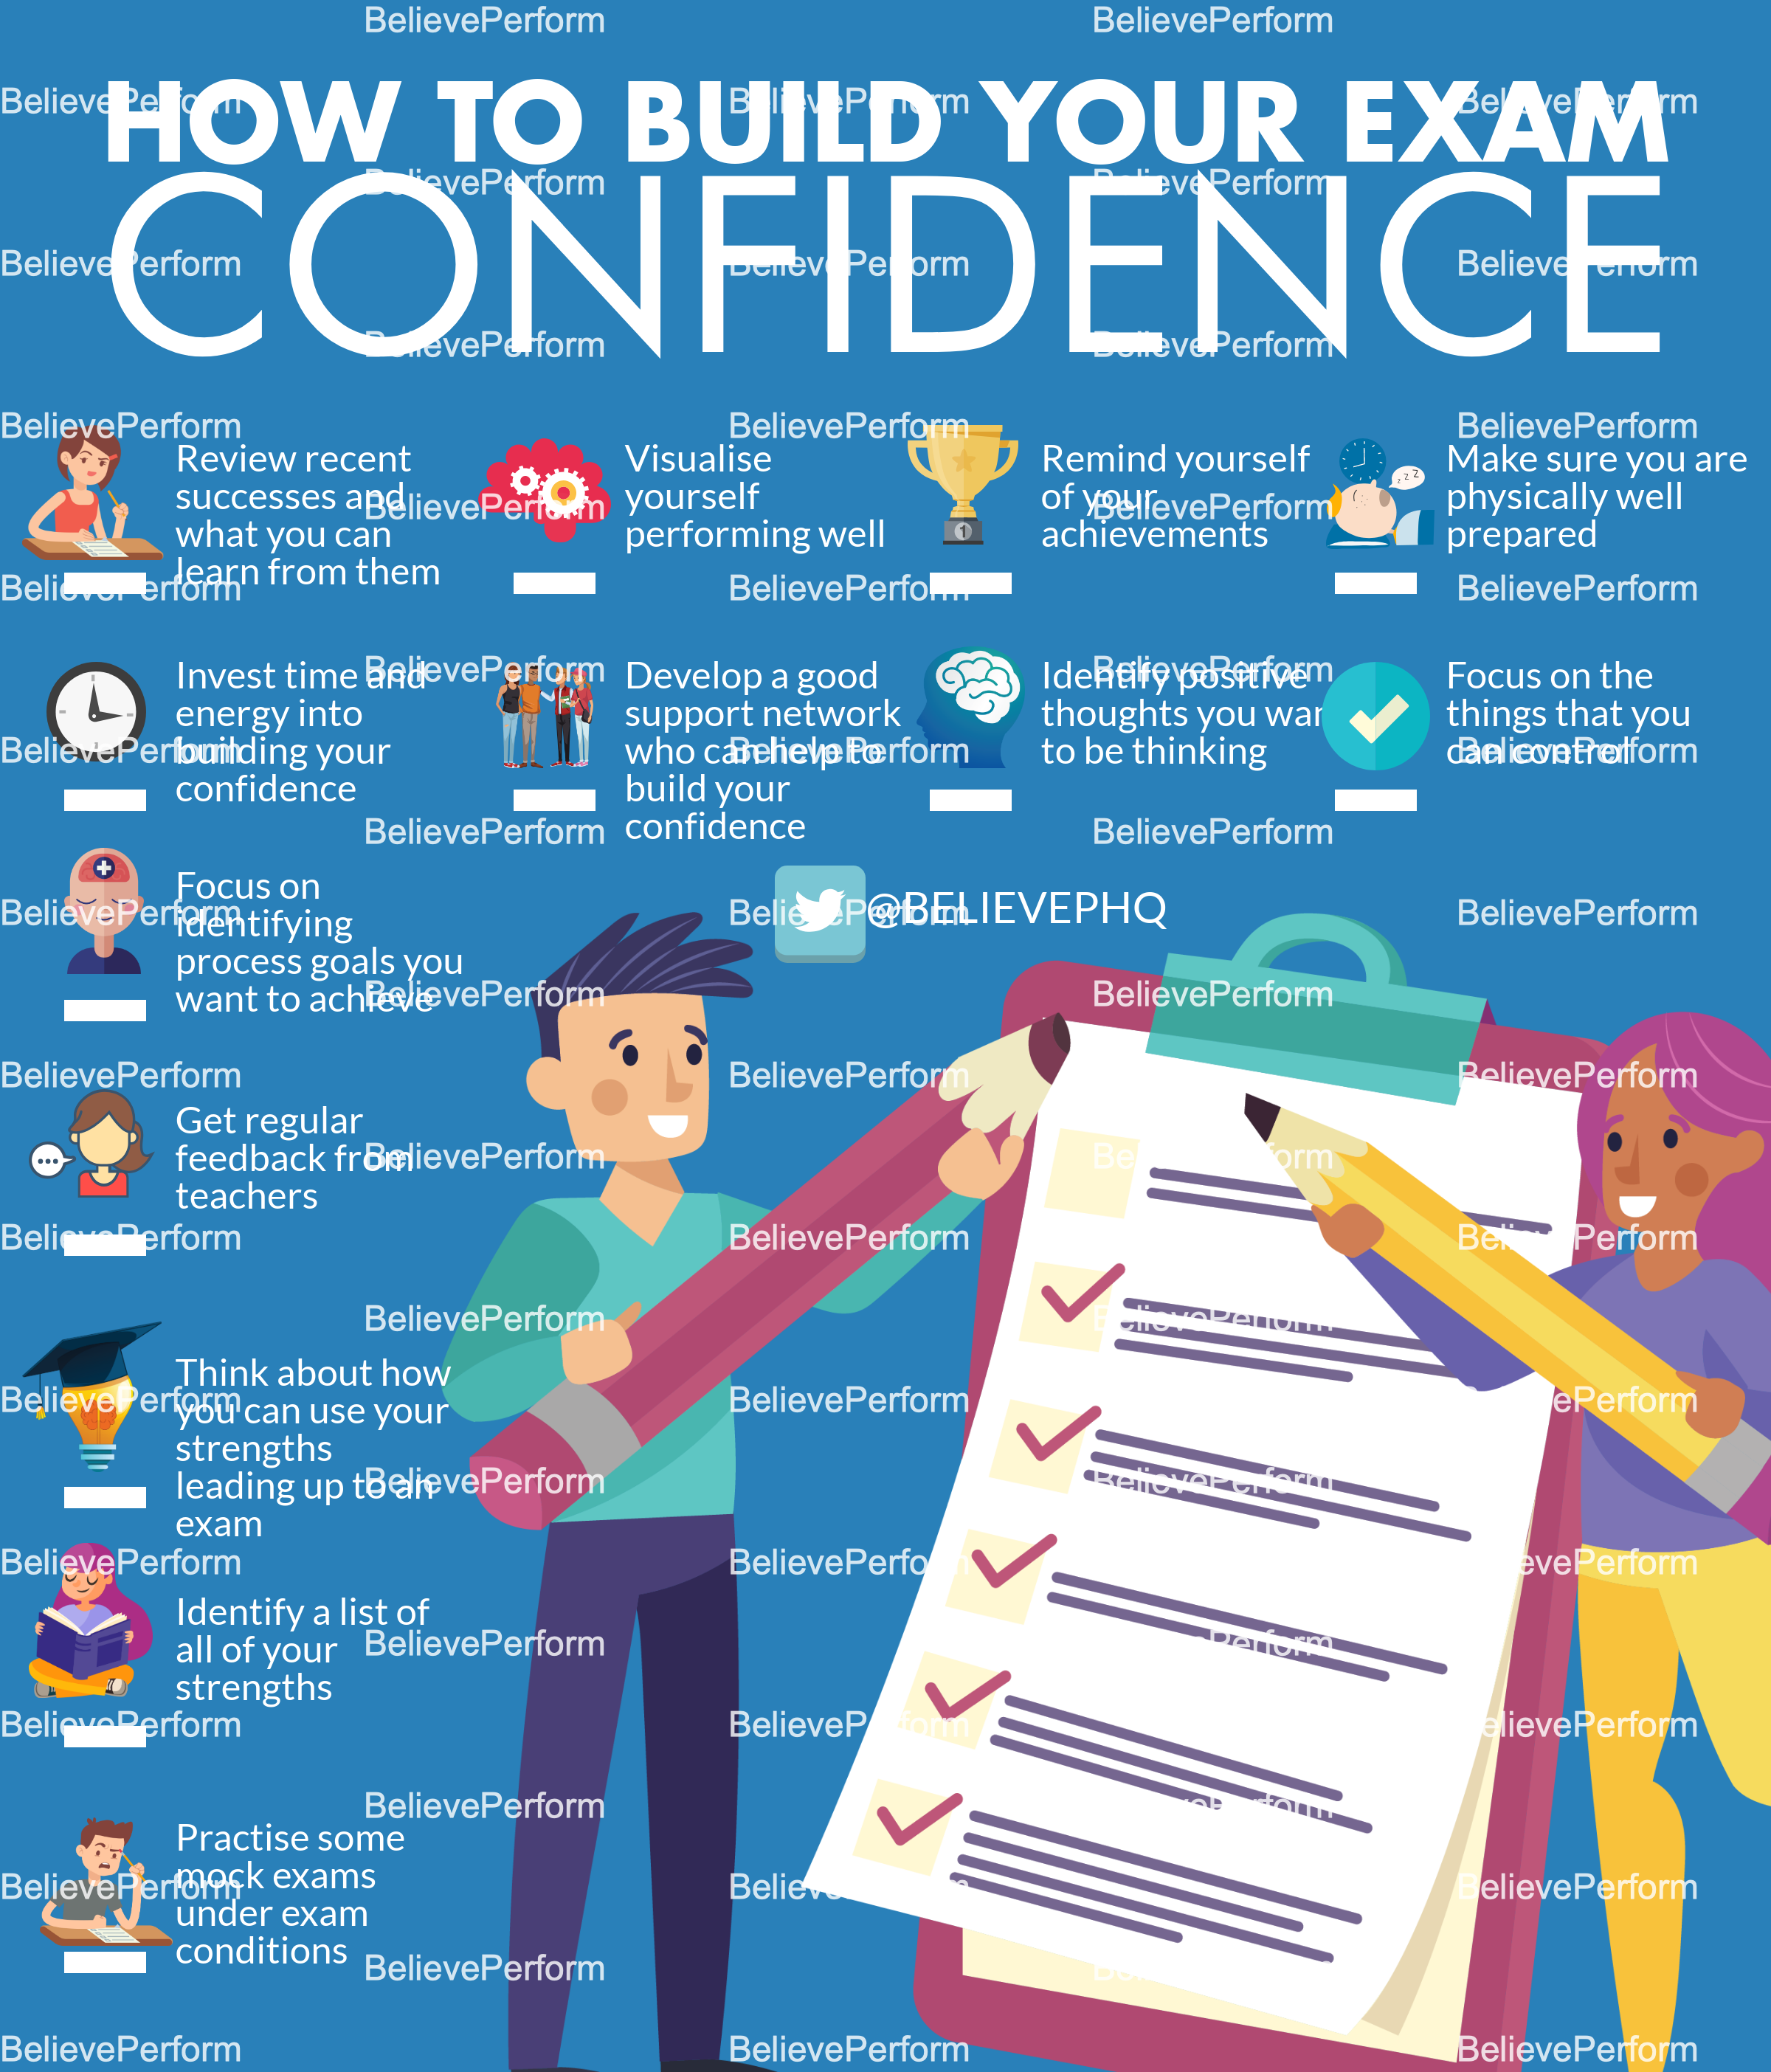 How to build your exam confidence